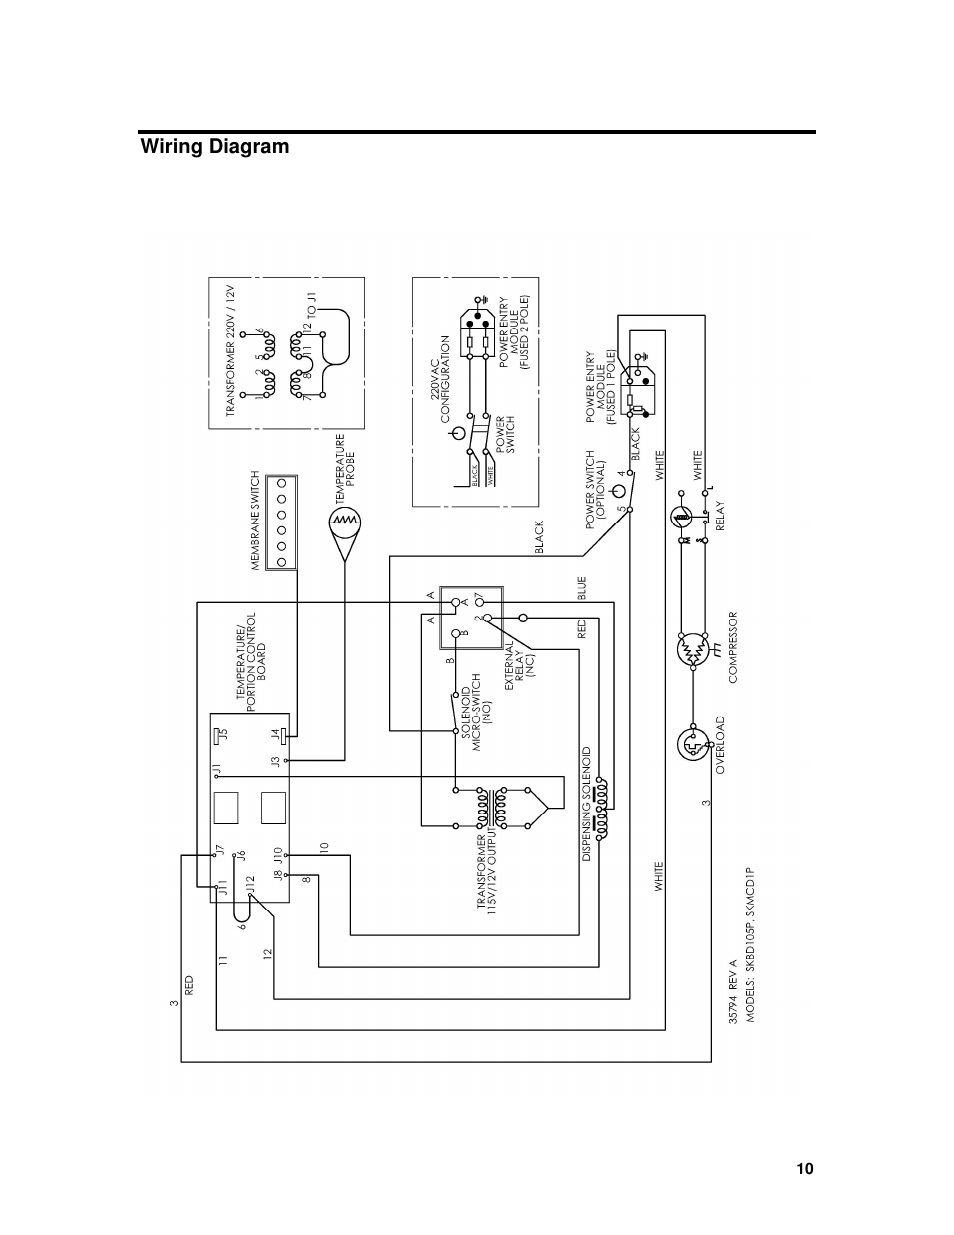 hight resolution of diagram for silver